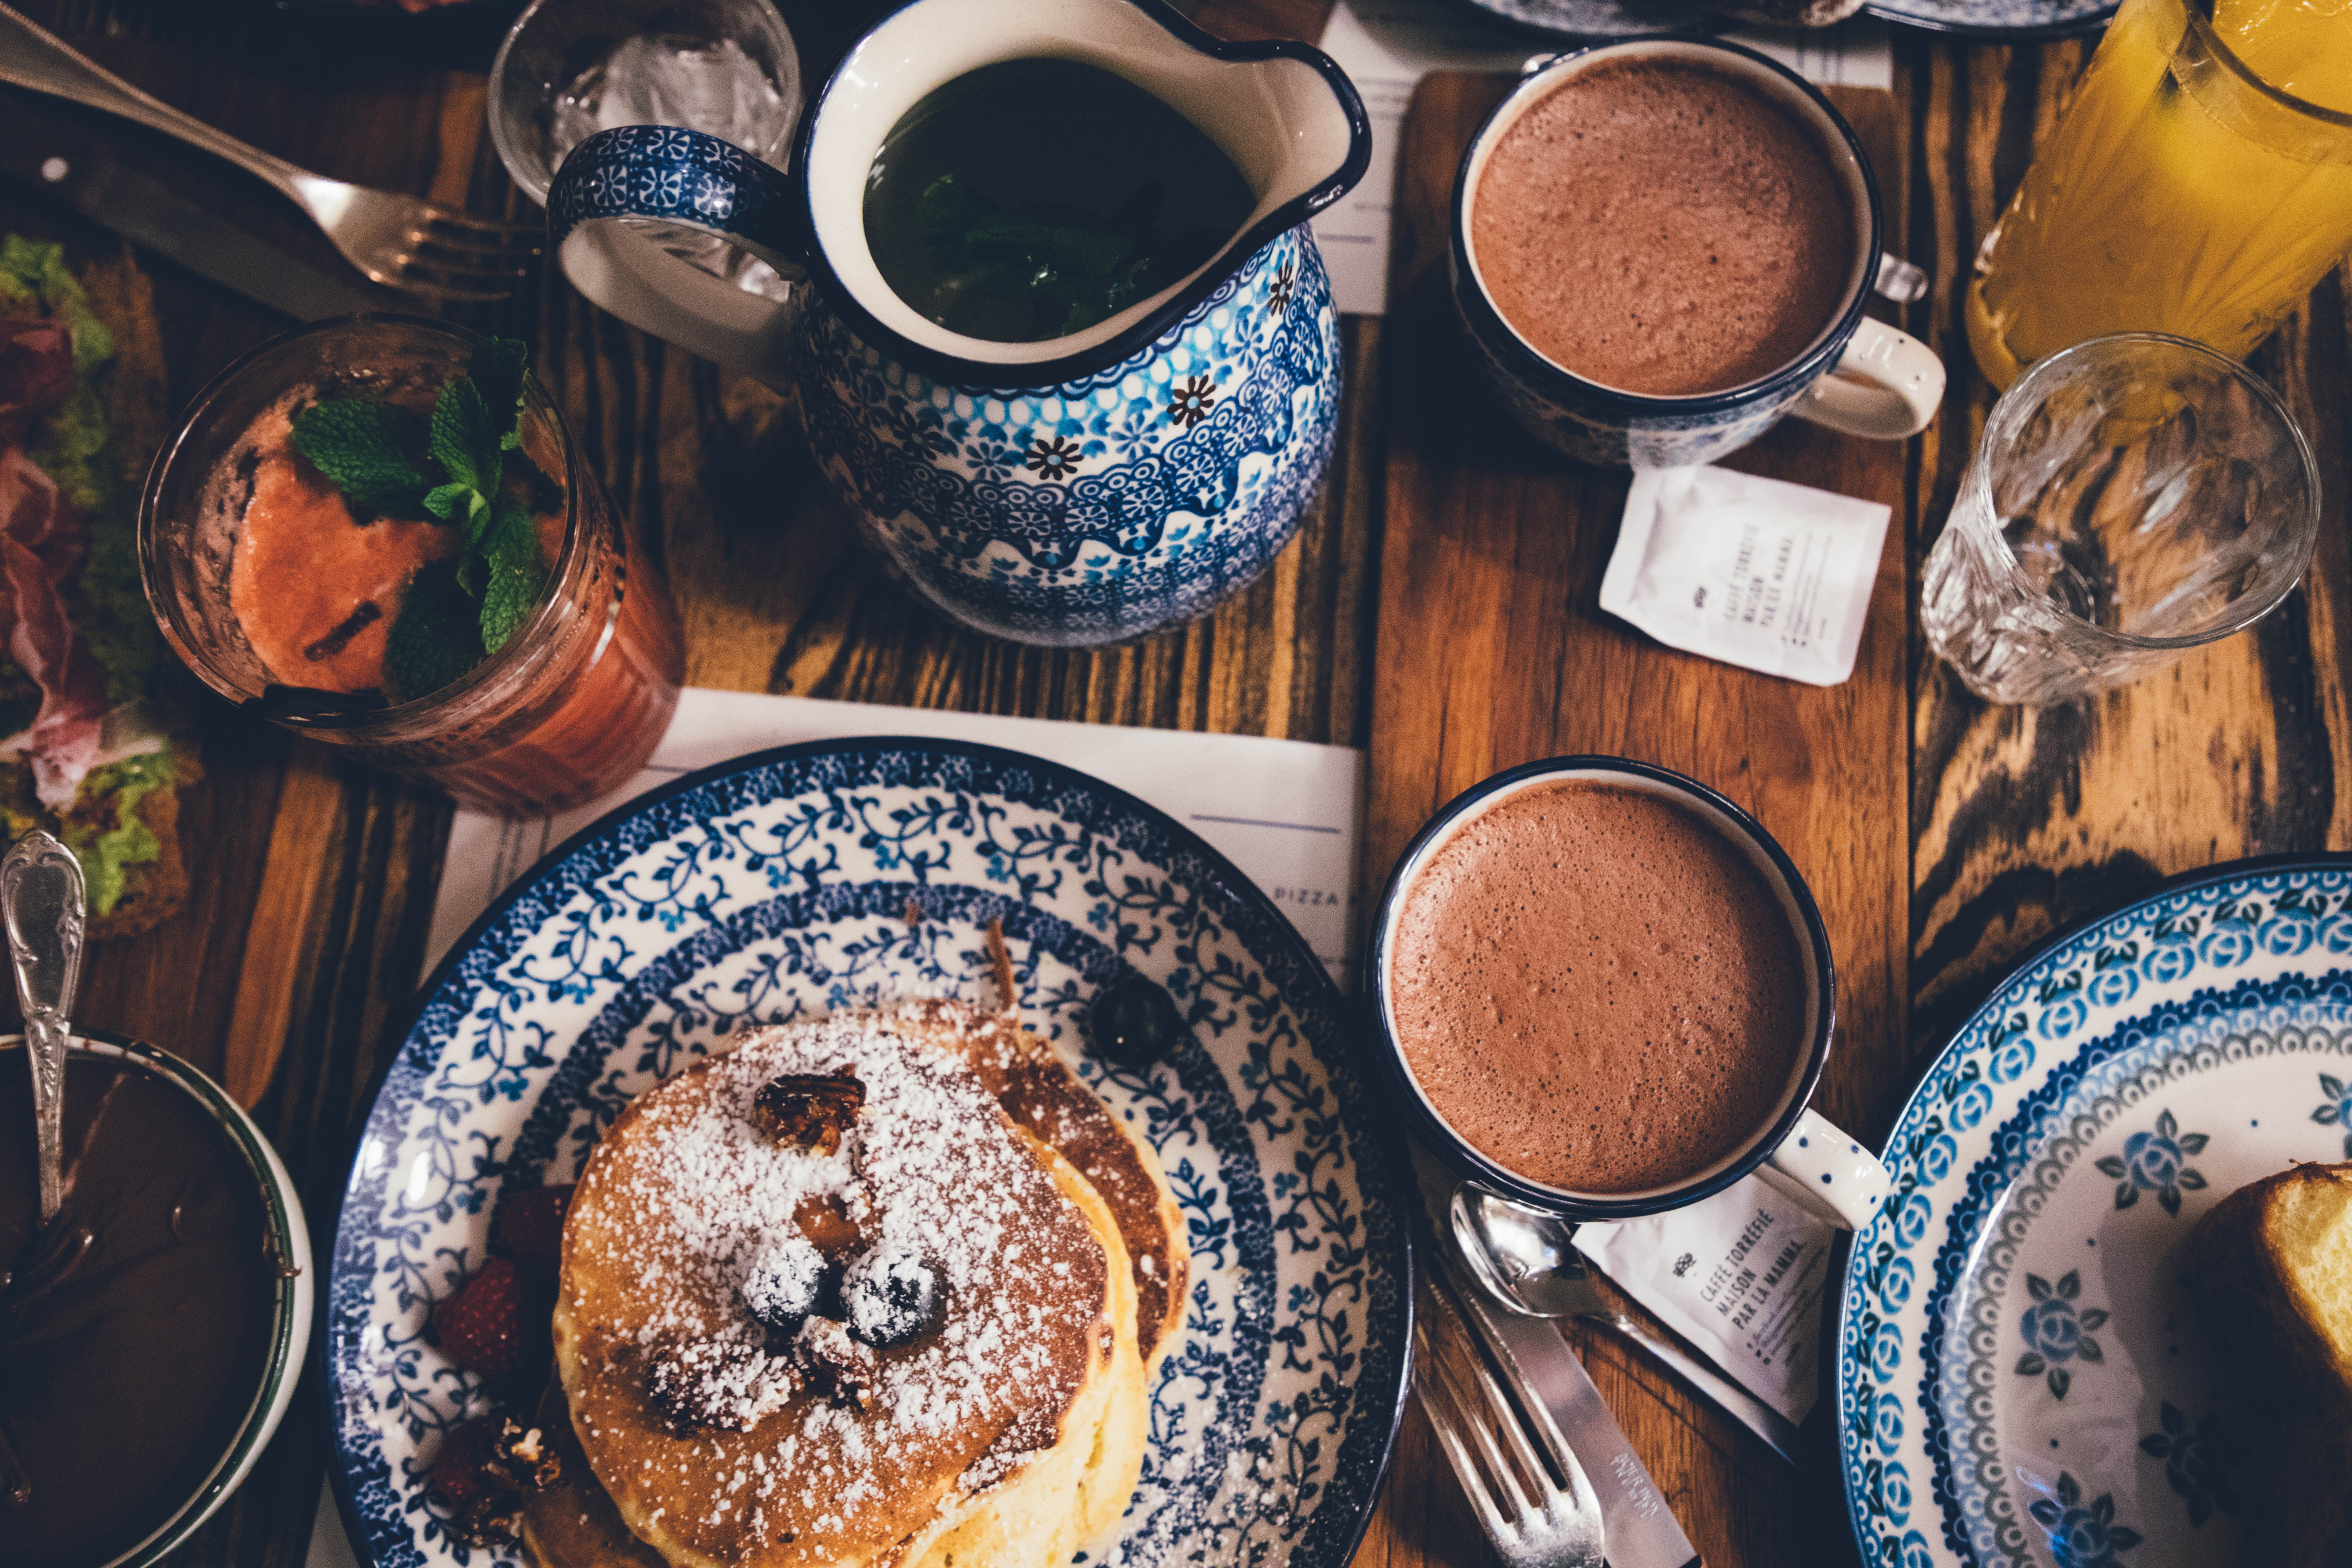 An overhead shot of a breakfast table with pancakes, mugs, drinks, and food